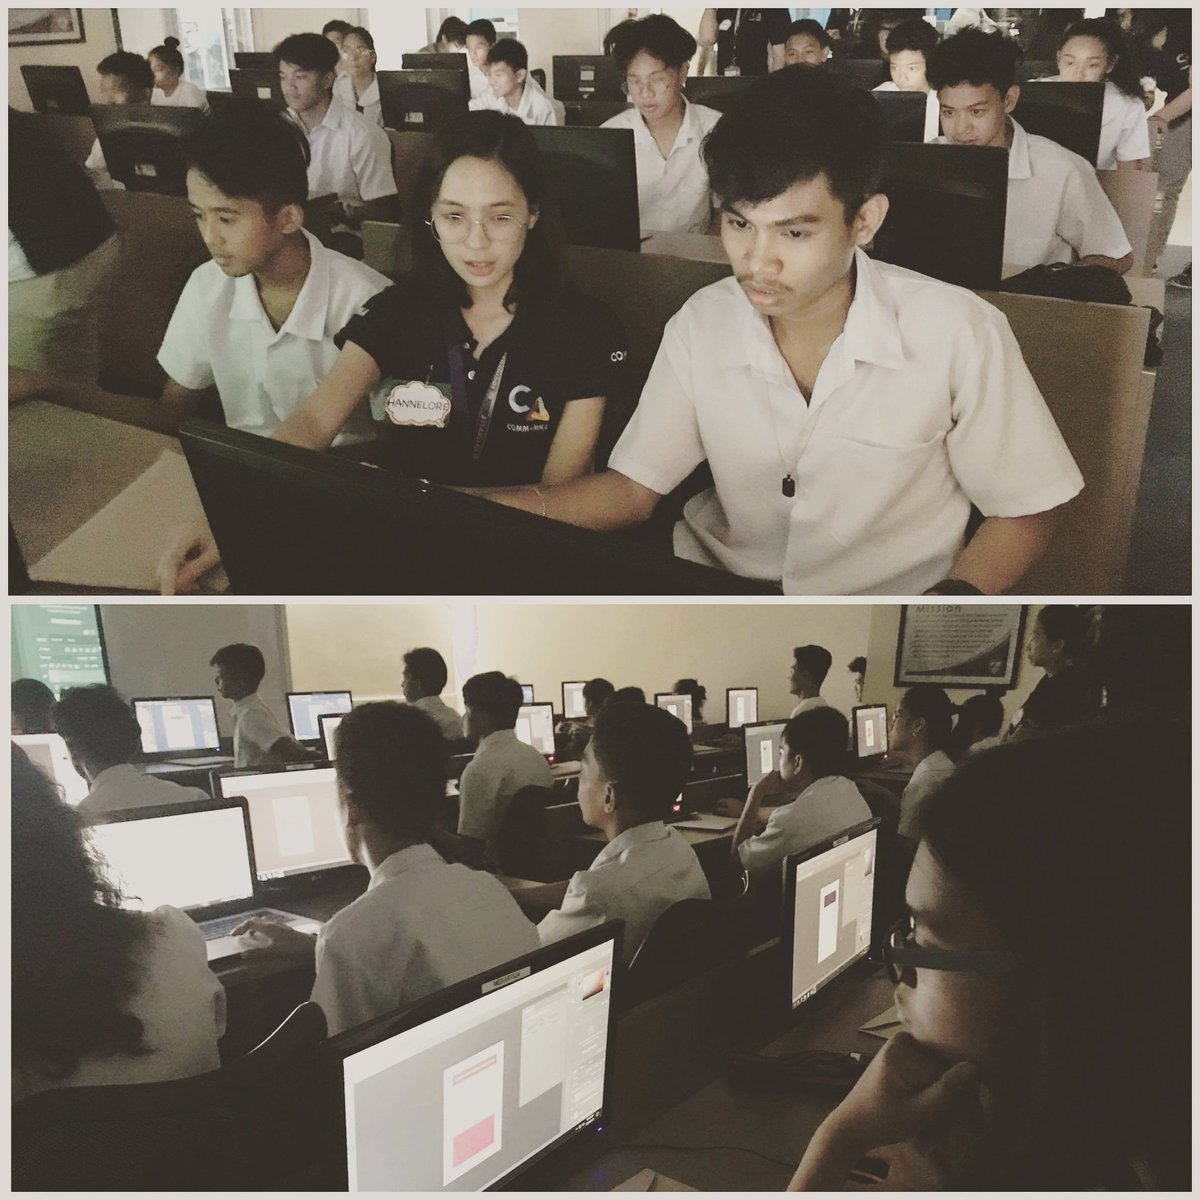 #HappeningNow Representatives from COMMA teaching Adobe Photoshop and basic design to CAA students #outreach #thecollegiatemover #cmonline<br>http://pic.twitter.com/6N54r7XbwP